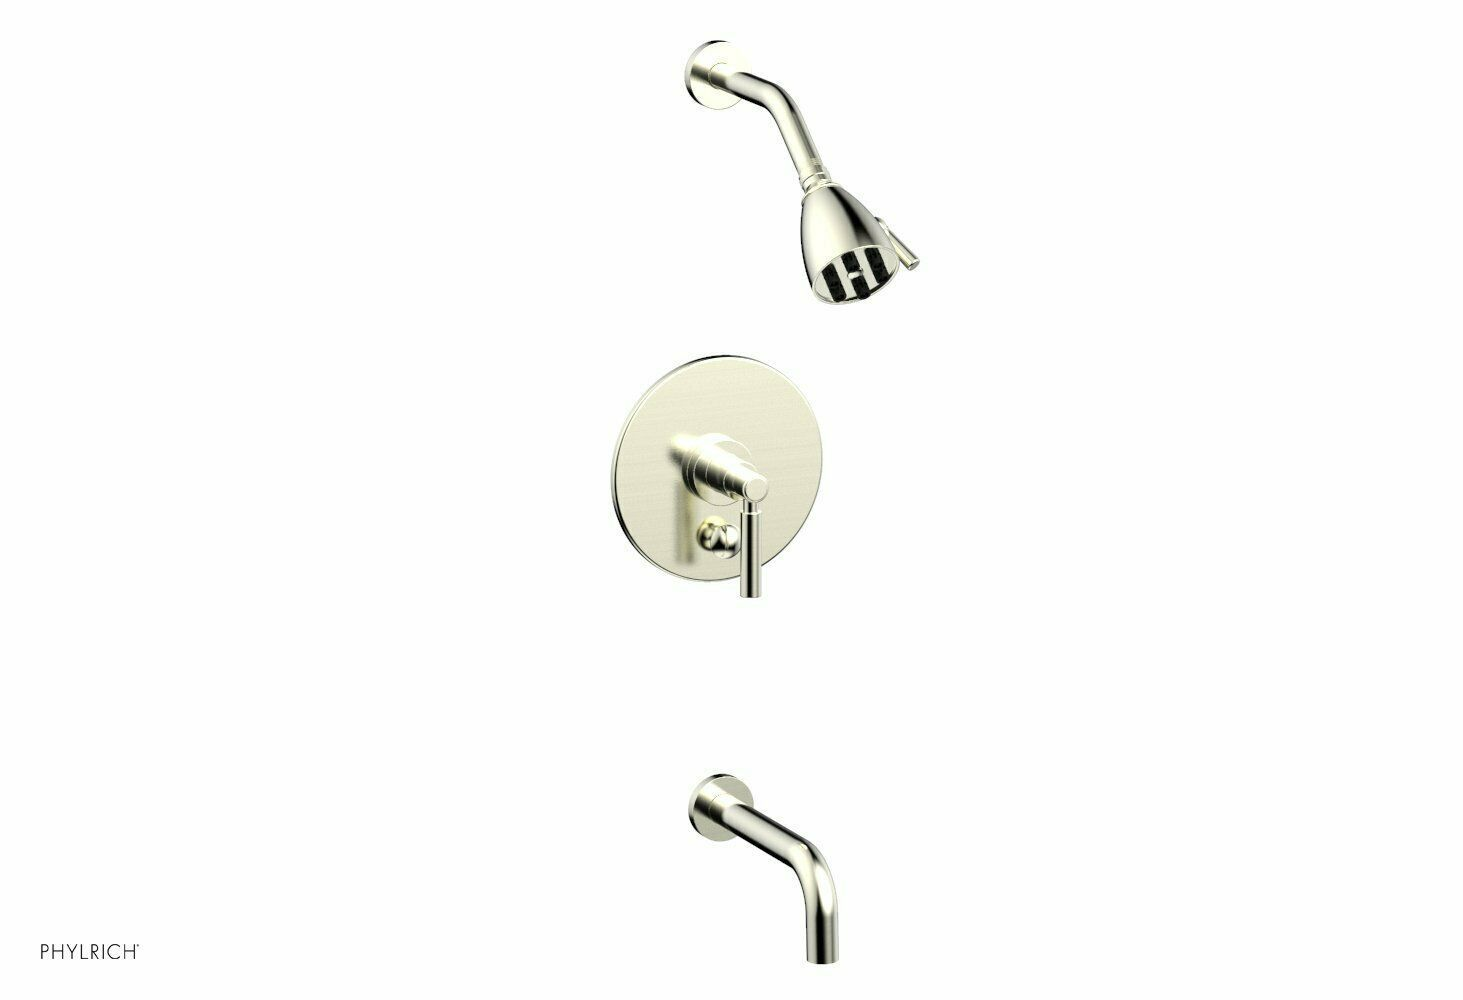 "Primary image for PHYLRICH BASIC Pressure Balance Tub and Shower Set - 7 1/2"" Spout DPB2130"